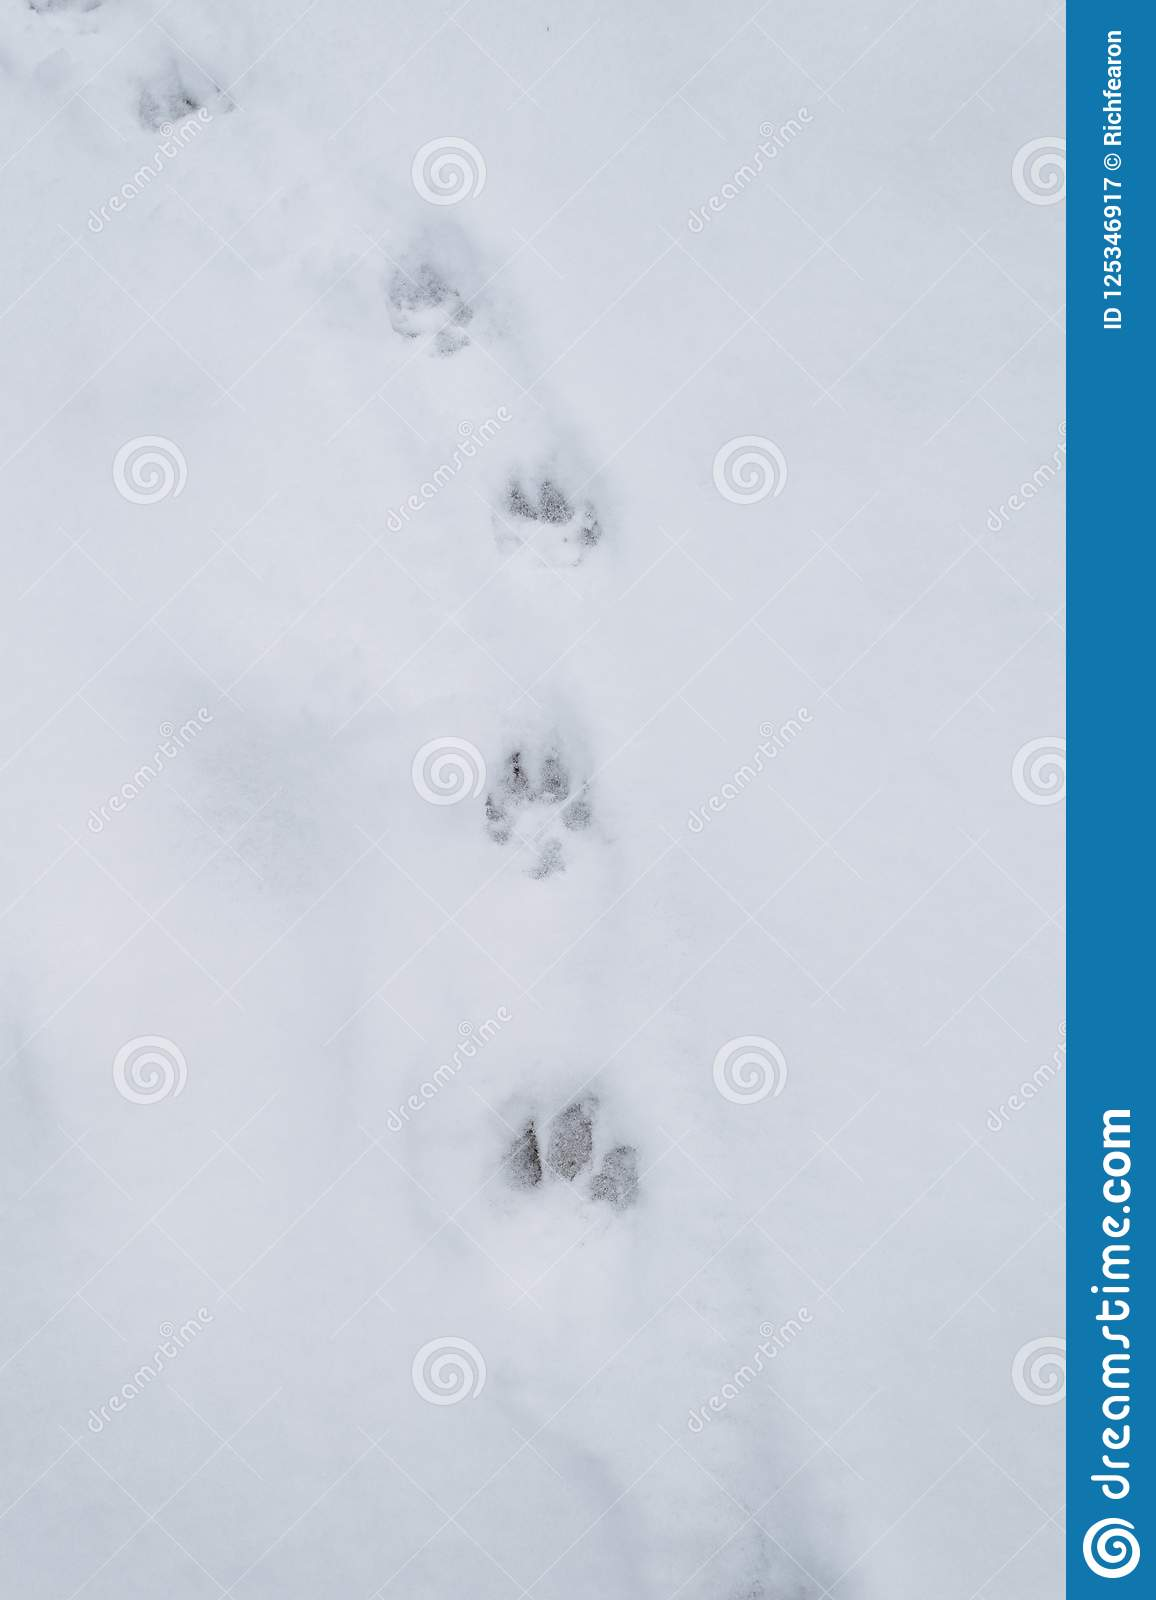 Paw Prints In The Snow Animal Tracks Winter Stock Image